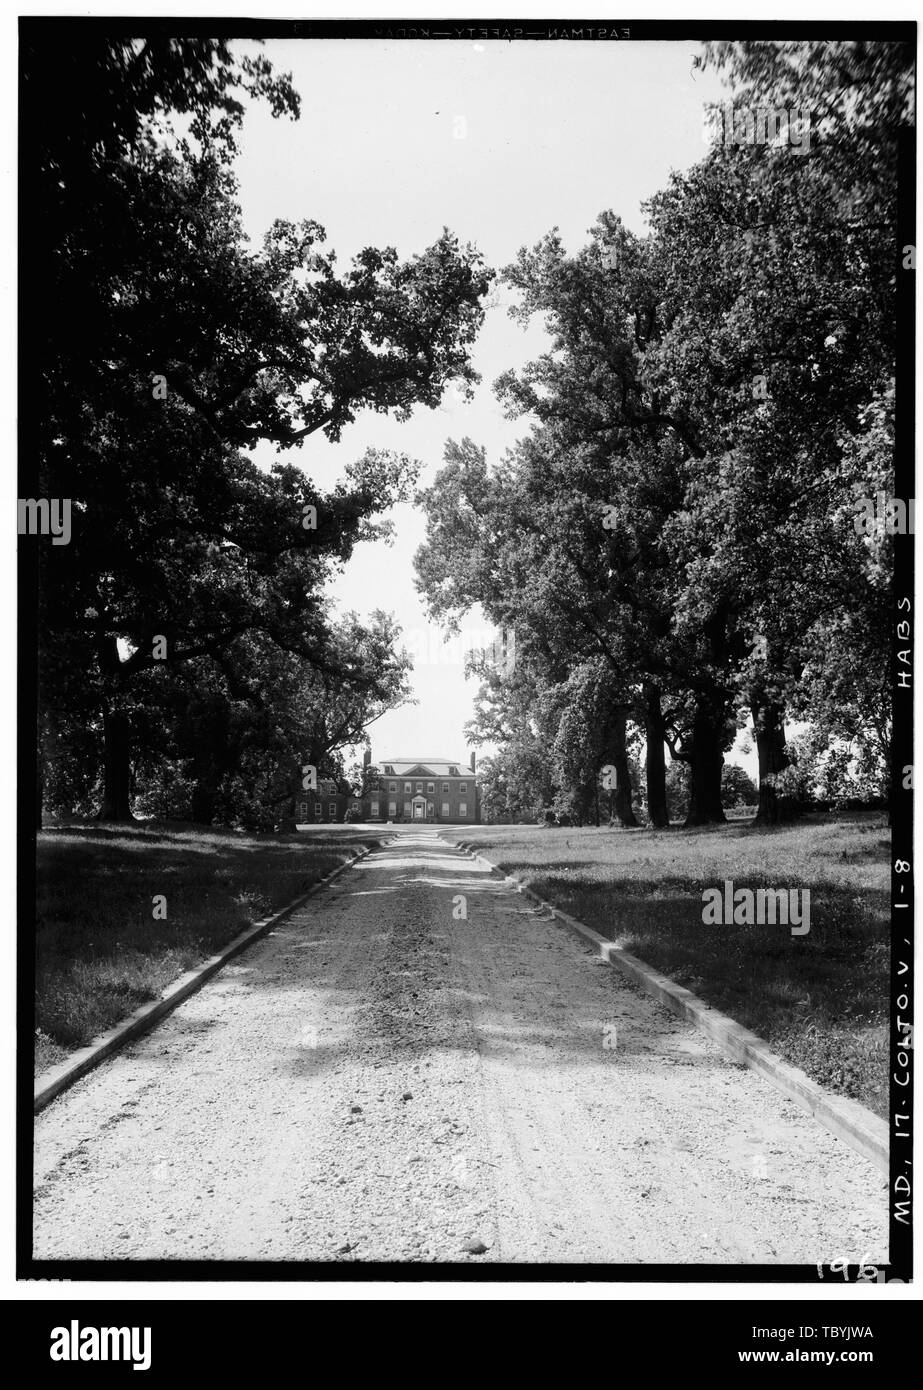 May 27, 1936 1000 A.M. DISTANT View From North (Front) ALONG ROADWAY  Belair, Tulip Grove Drive, BelairatBowie, Bowie, Prince George's County, MD Ogle, Samuel Tasker, Benjamin Tasker, Benjamin Franklin, Benjamin Sharpe, Horatio Ogle, Benjamin Woodward, James T Levitt and Sons Klugh, Terra, transmitter Brostrup, John O, photographer Nichols, Frederick D, photographer Boucher, Jack, photographer Klugh, Terra, historian Price, Virginia B, transmitter - Stock Image